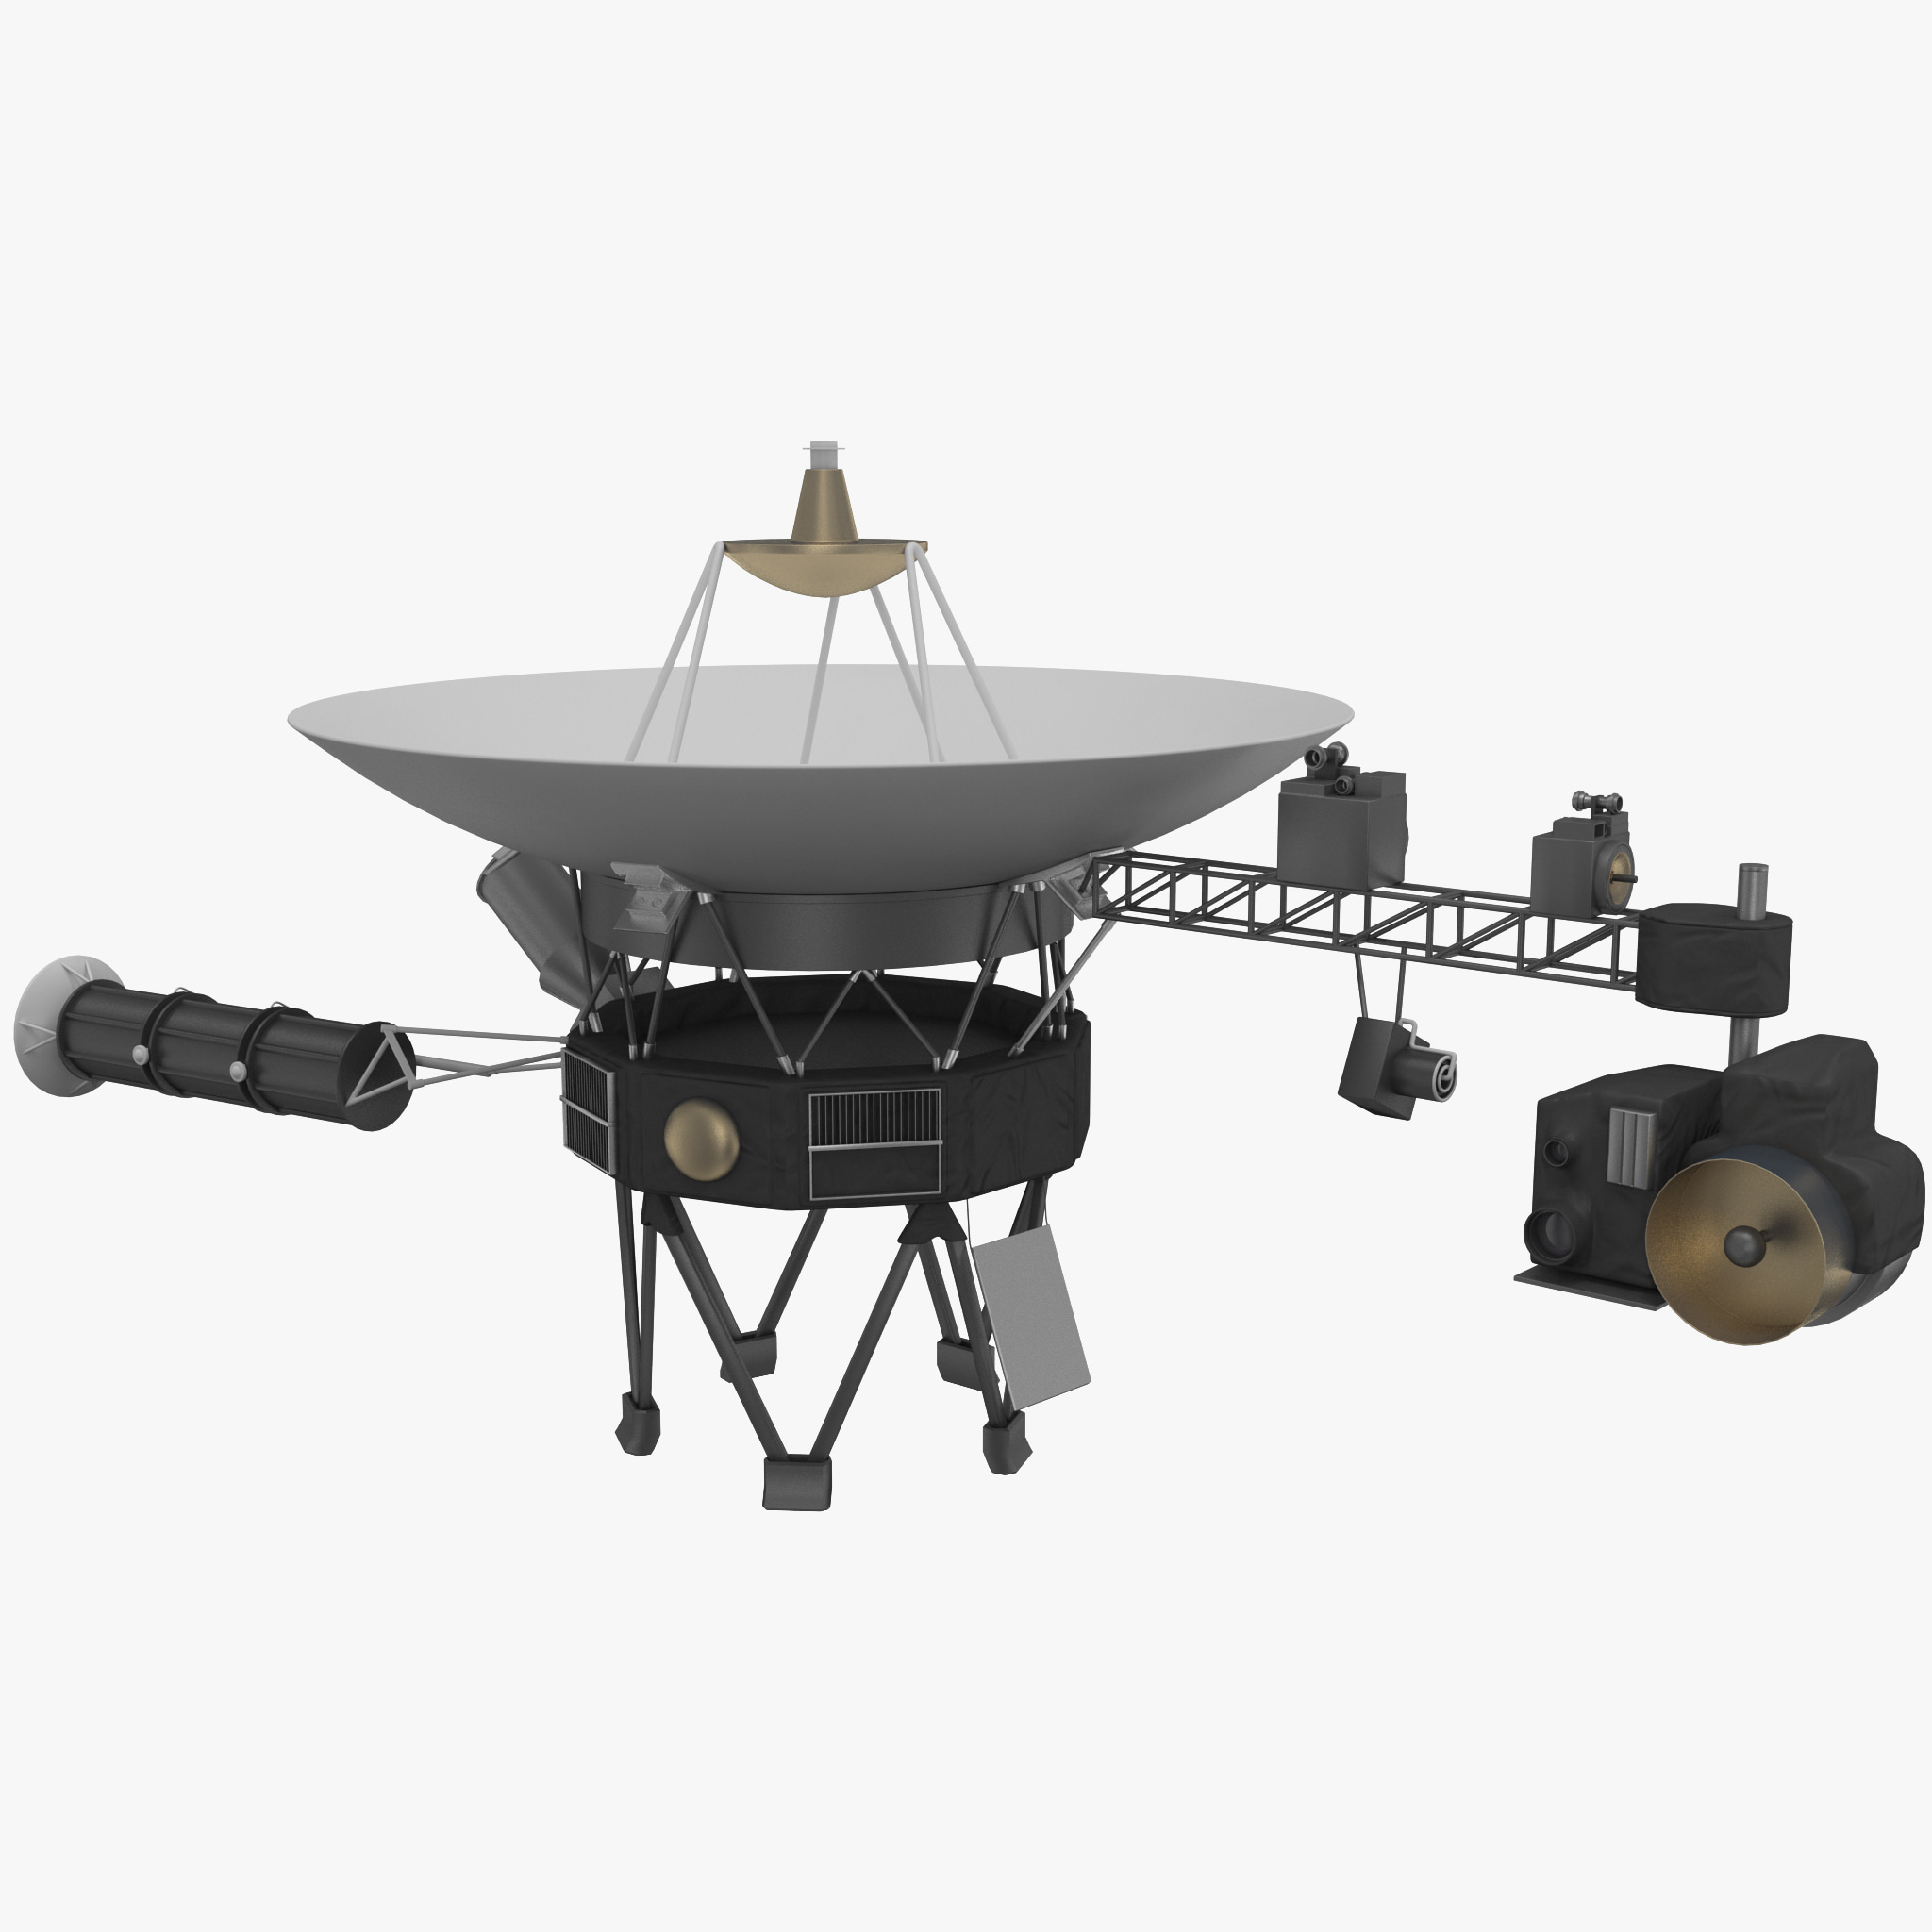 Voyager 1 Space Probe Equipment - Pics about space